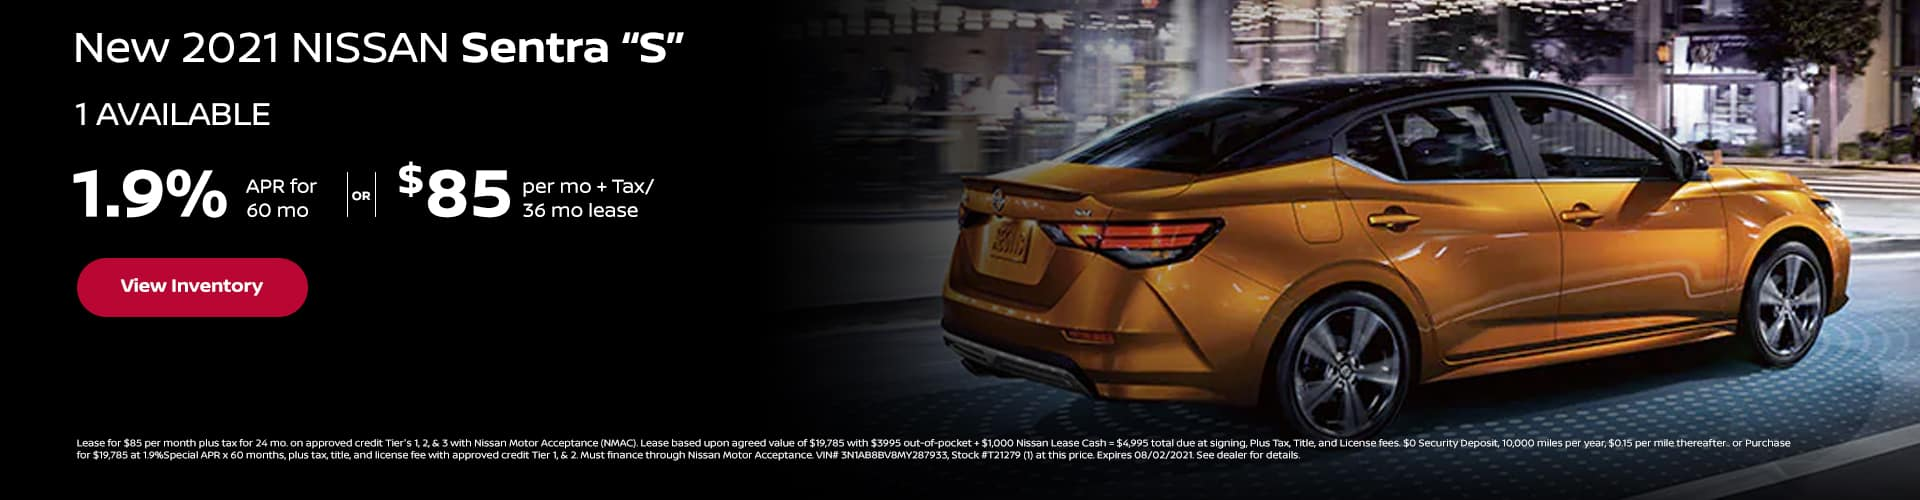 """1.9% APR x 60 mo New 2021 NISSAN SENTRA """"S"""" (1) AVAILABLE $85 per mo. + Tax / 24 mo lease"""